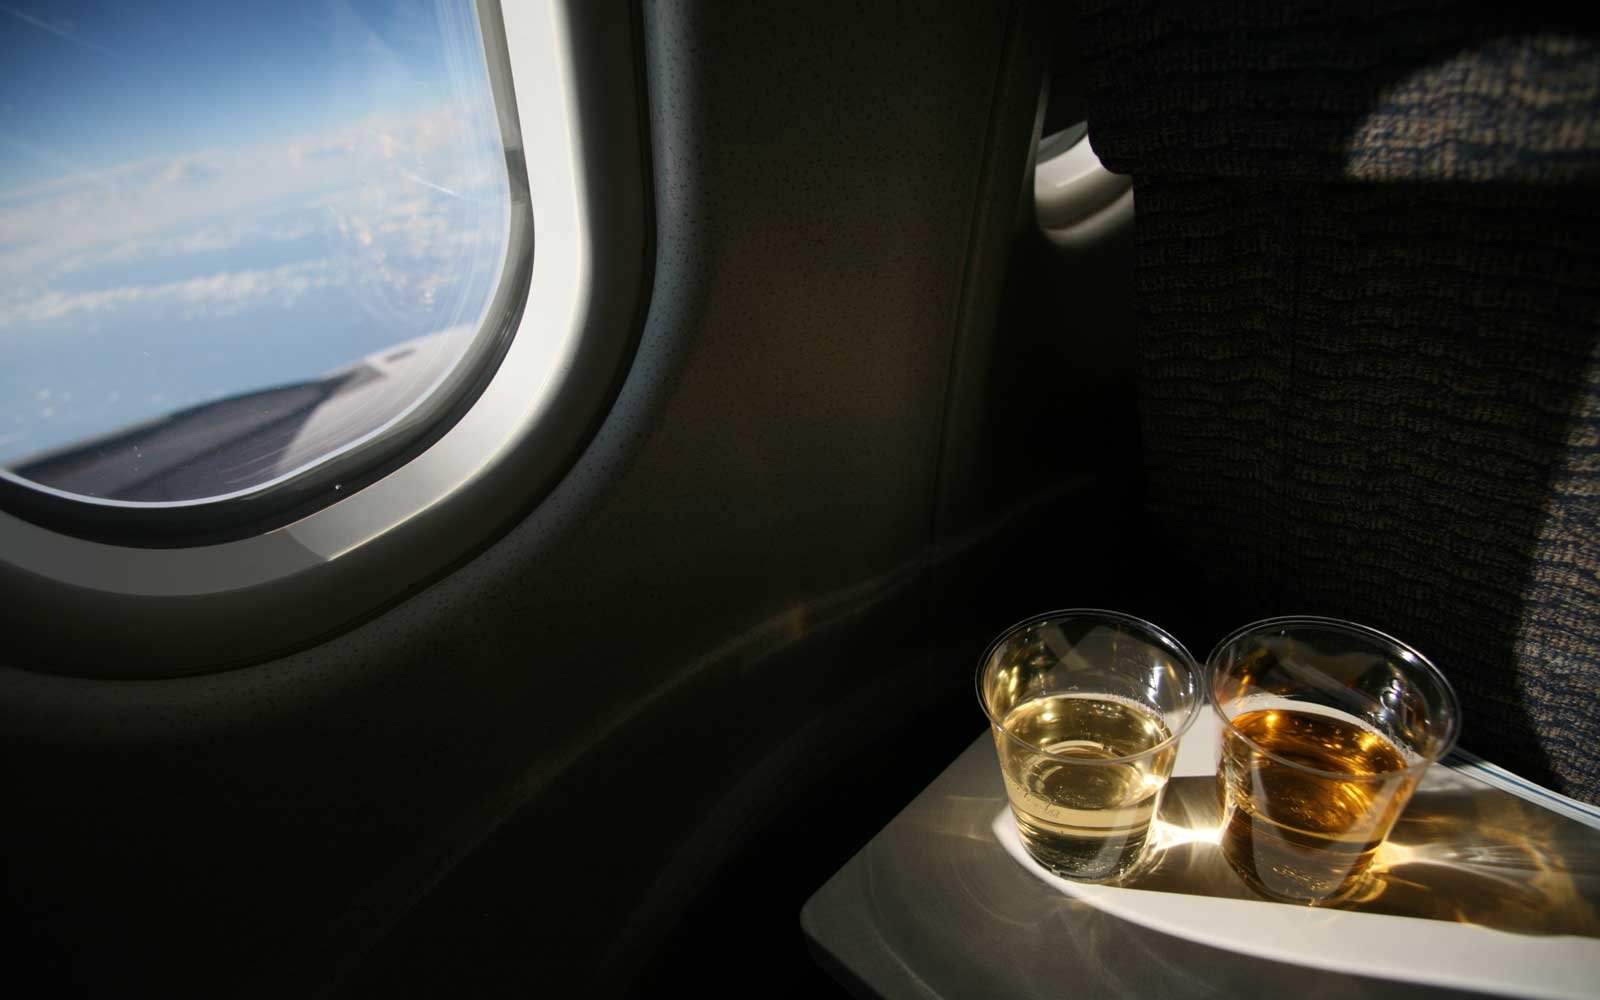 Two glasses of wine in aeroplane by window